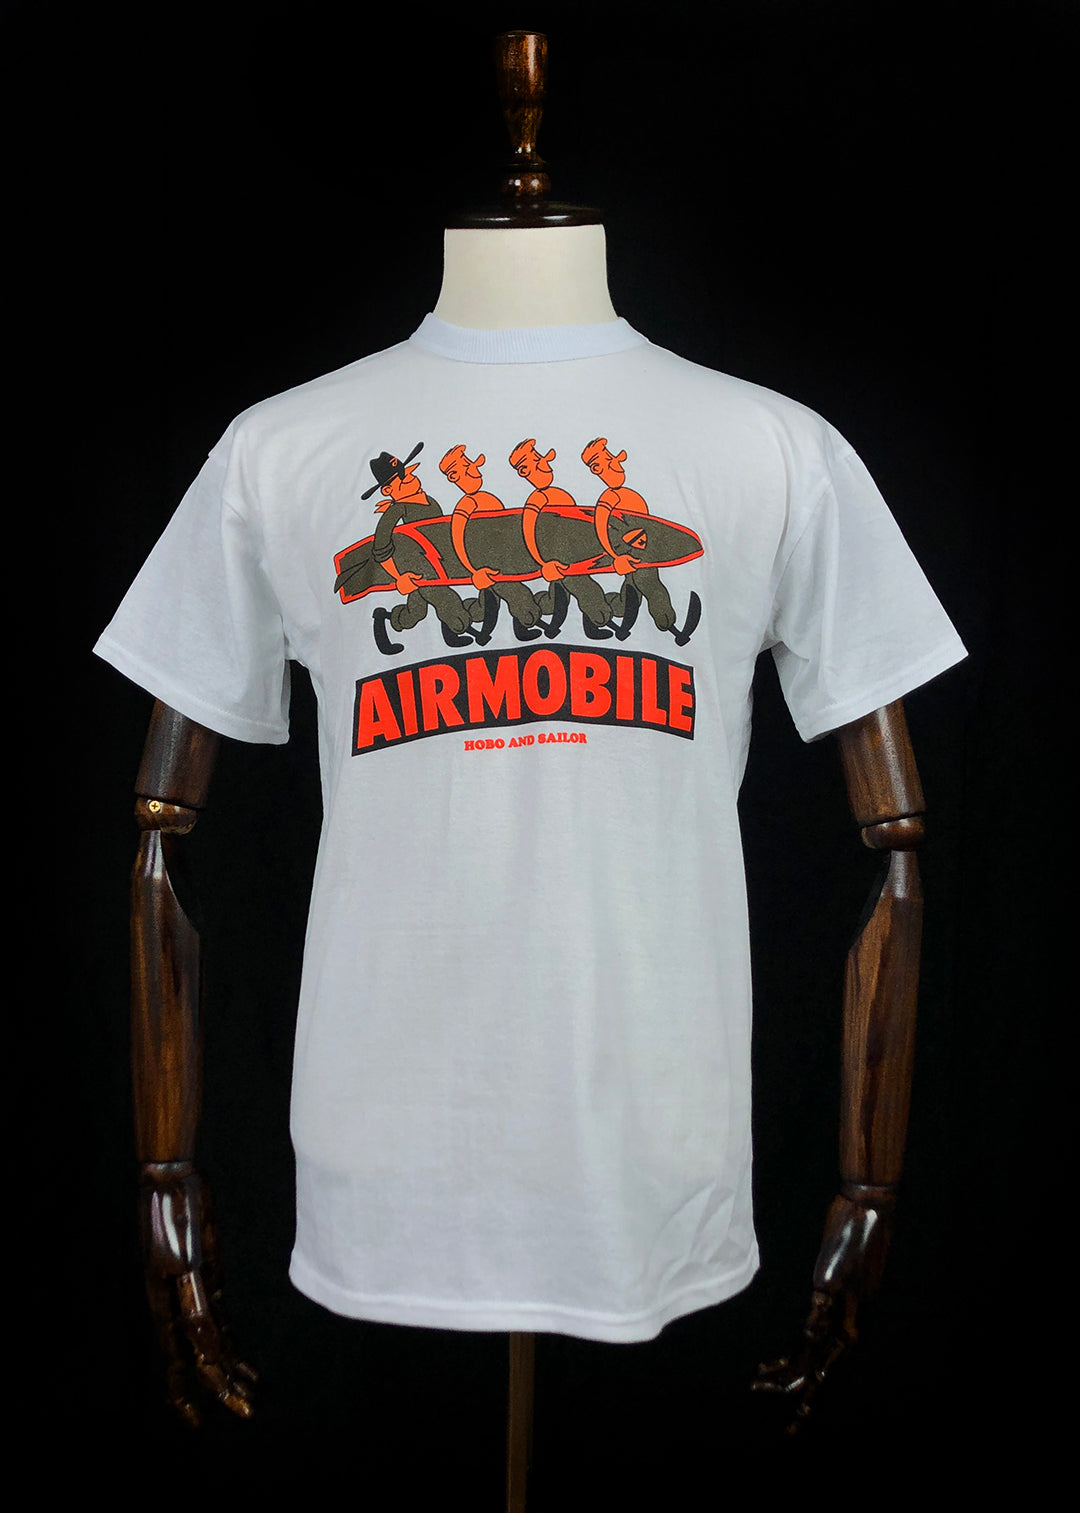 T-shirt. Airmobile. White